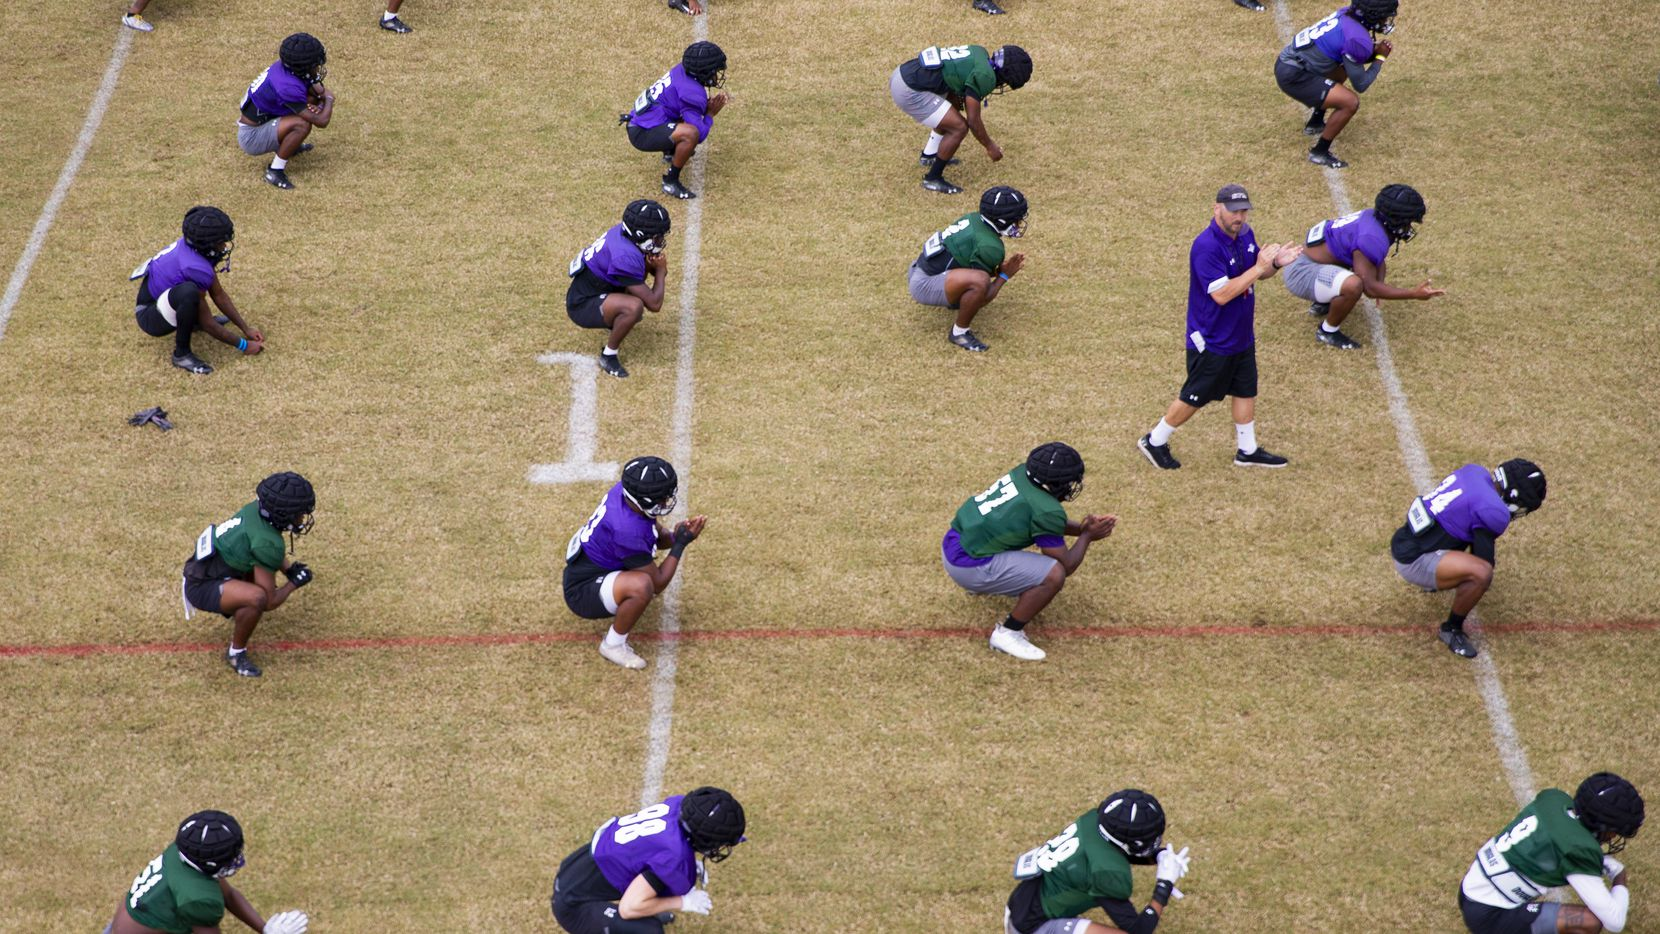 FILE - The SFA football team stretches as coach Colby Carthel leads practice in Nacogdoches on Thursday, Oct. 8, 2020.